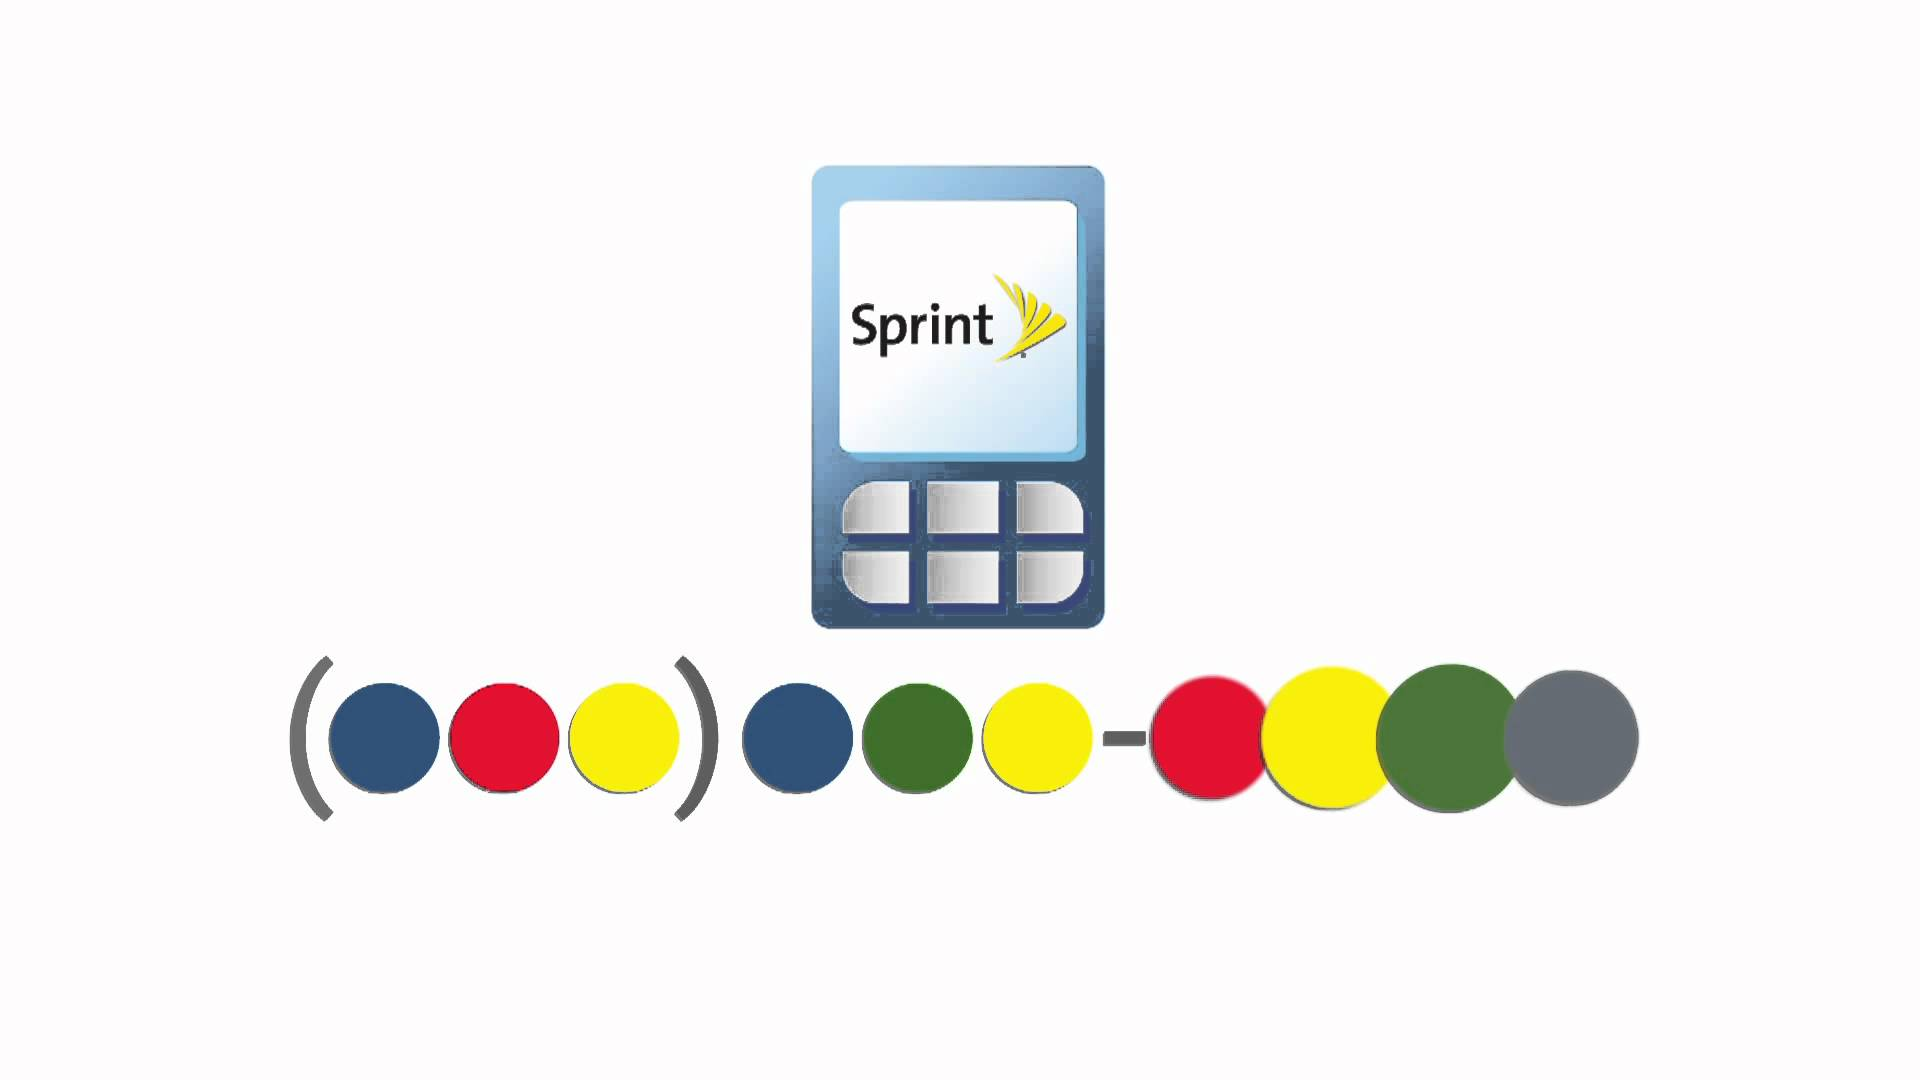 Google Voice integration with Sprint will end on June 1st